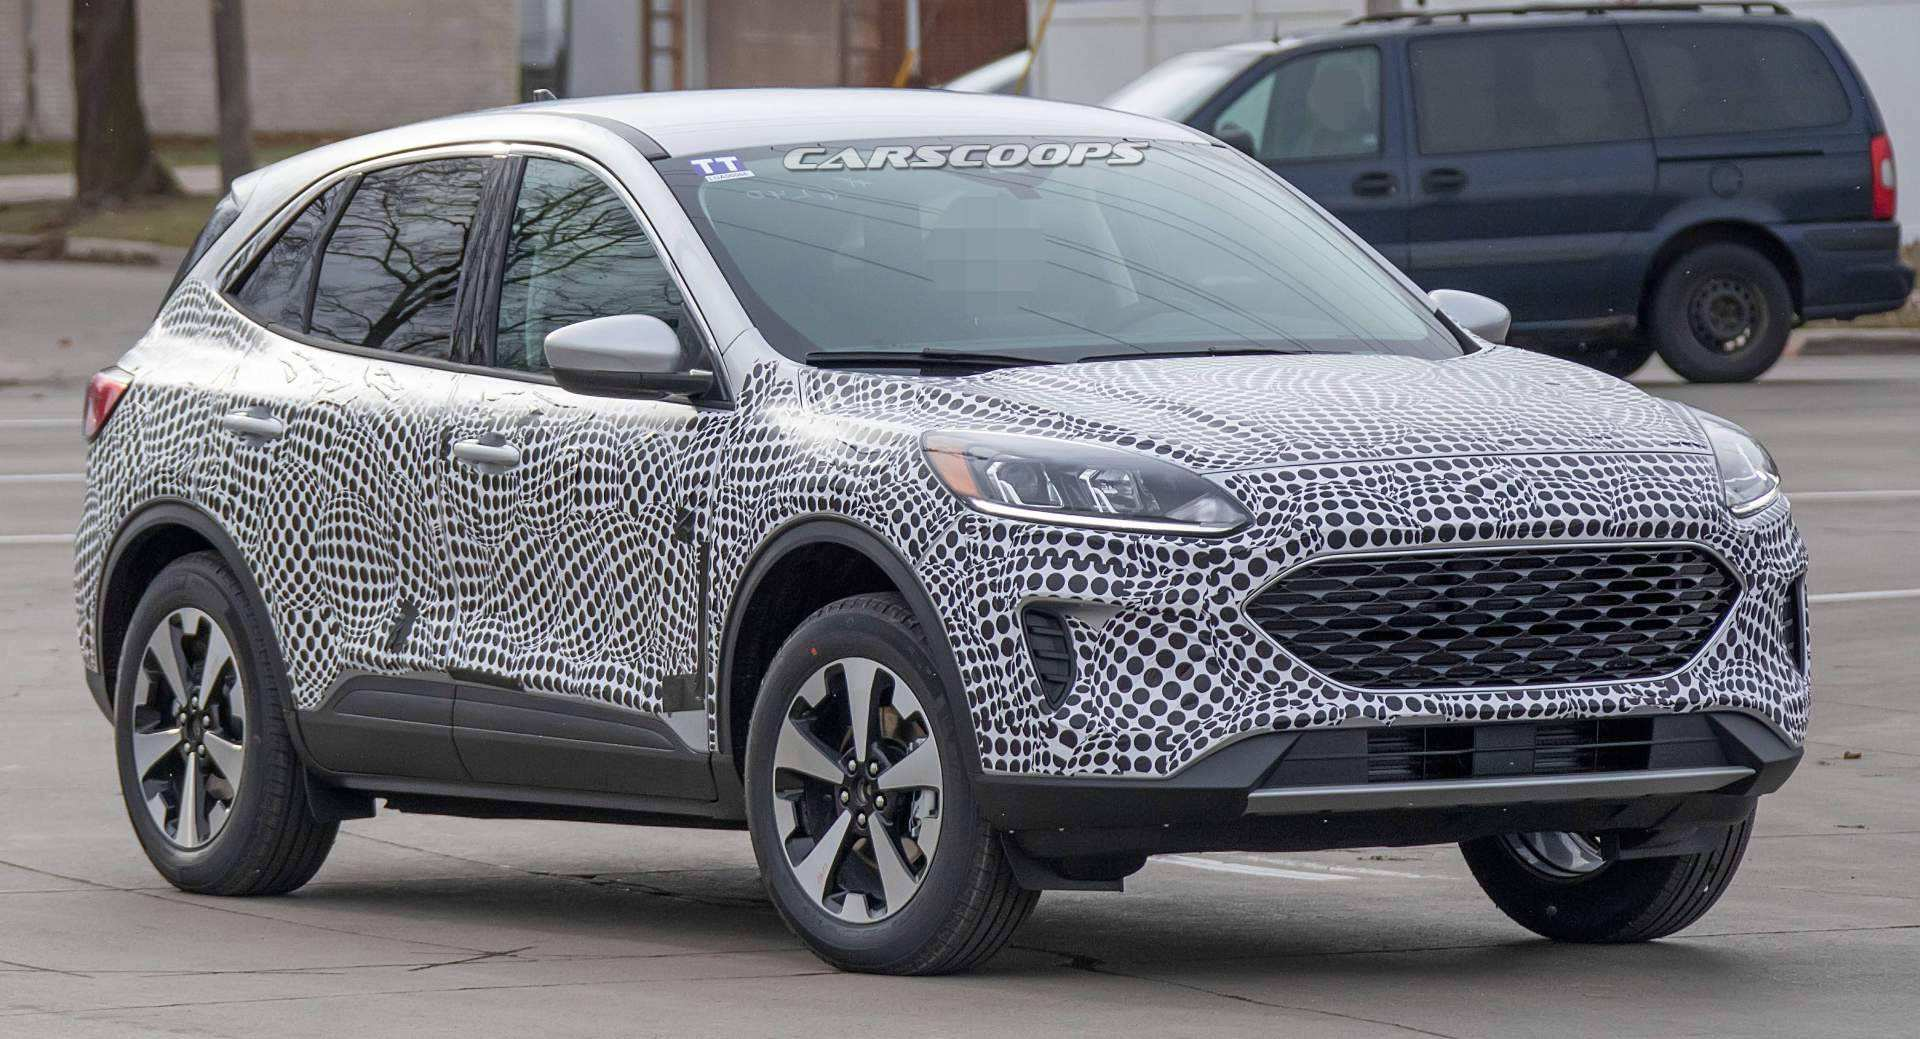 63 New Ford Kuga 2020 Spy Shots Picture